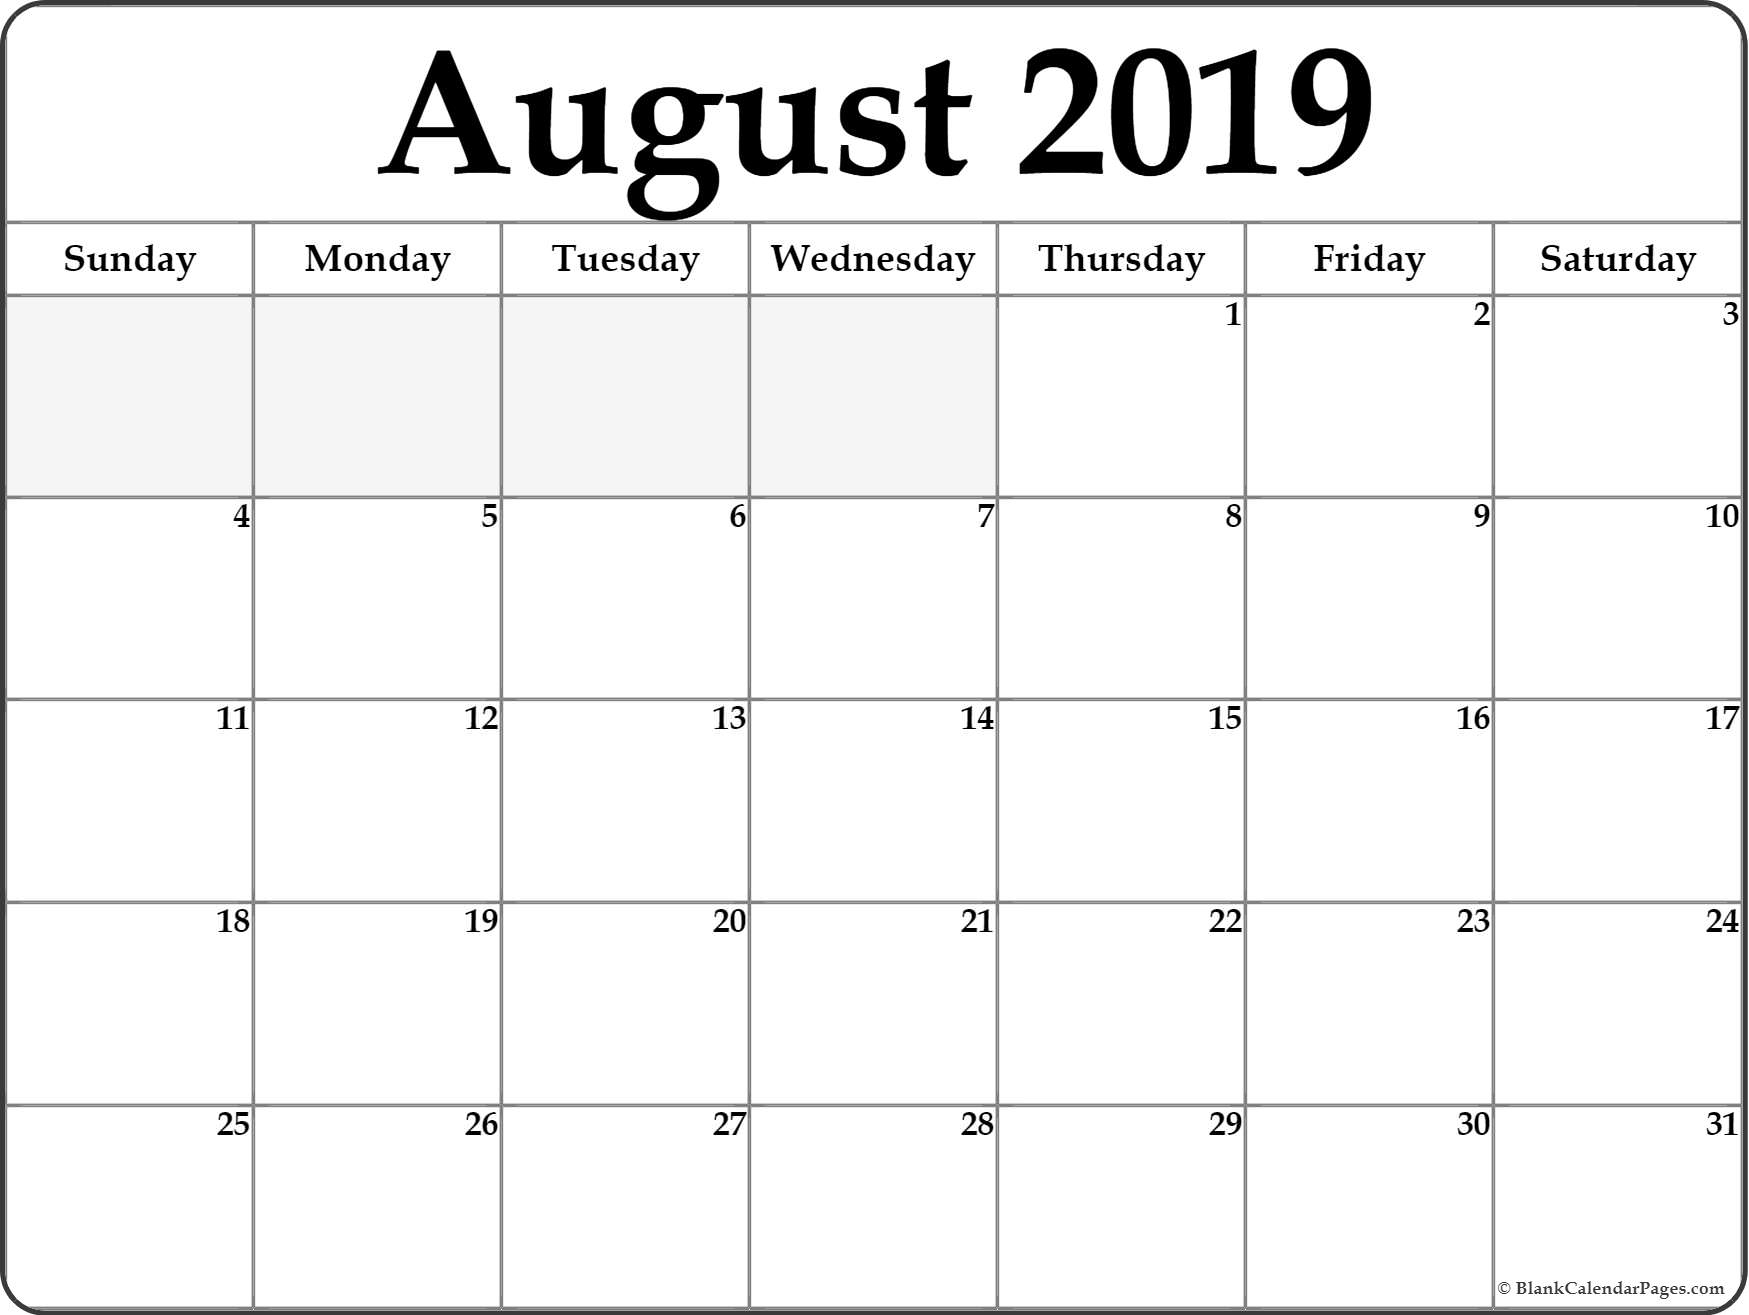 August 2019 Calendar | Free Printable Monthly Calendars intended for Blank Calender August Printable